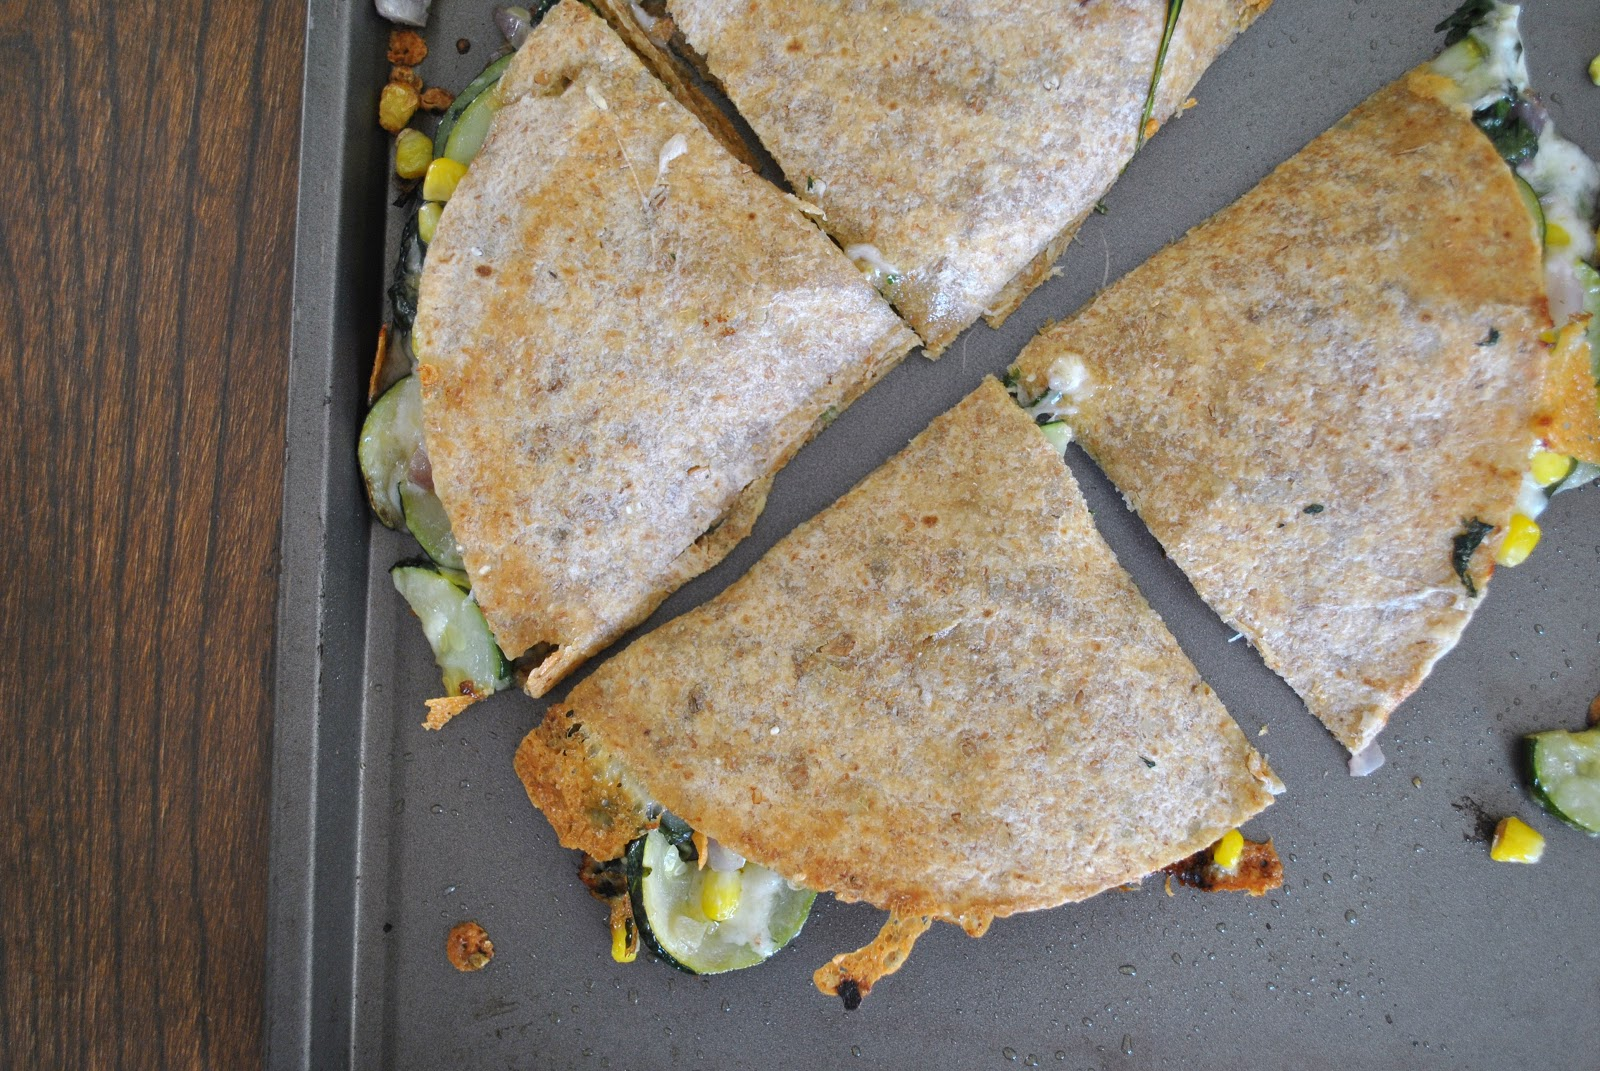 Kristin in Her Kitchen: Baked Zucchini Quesadillas + VICTORY